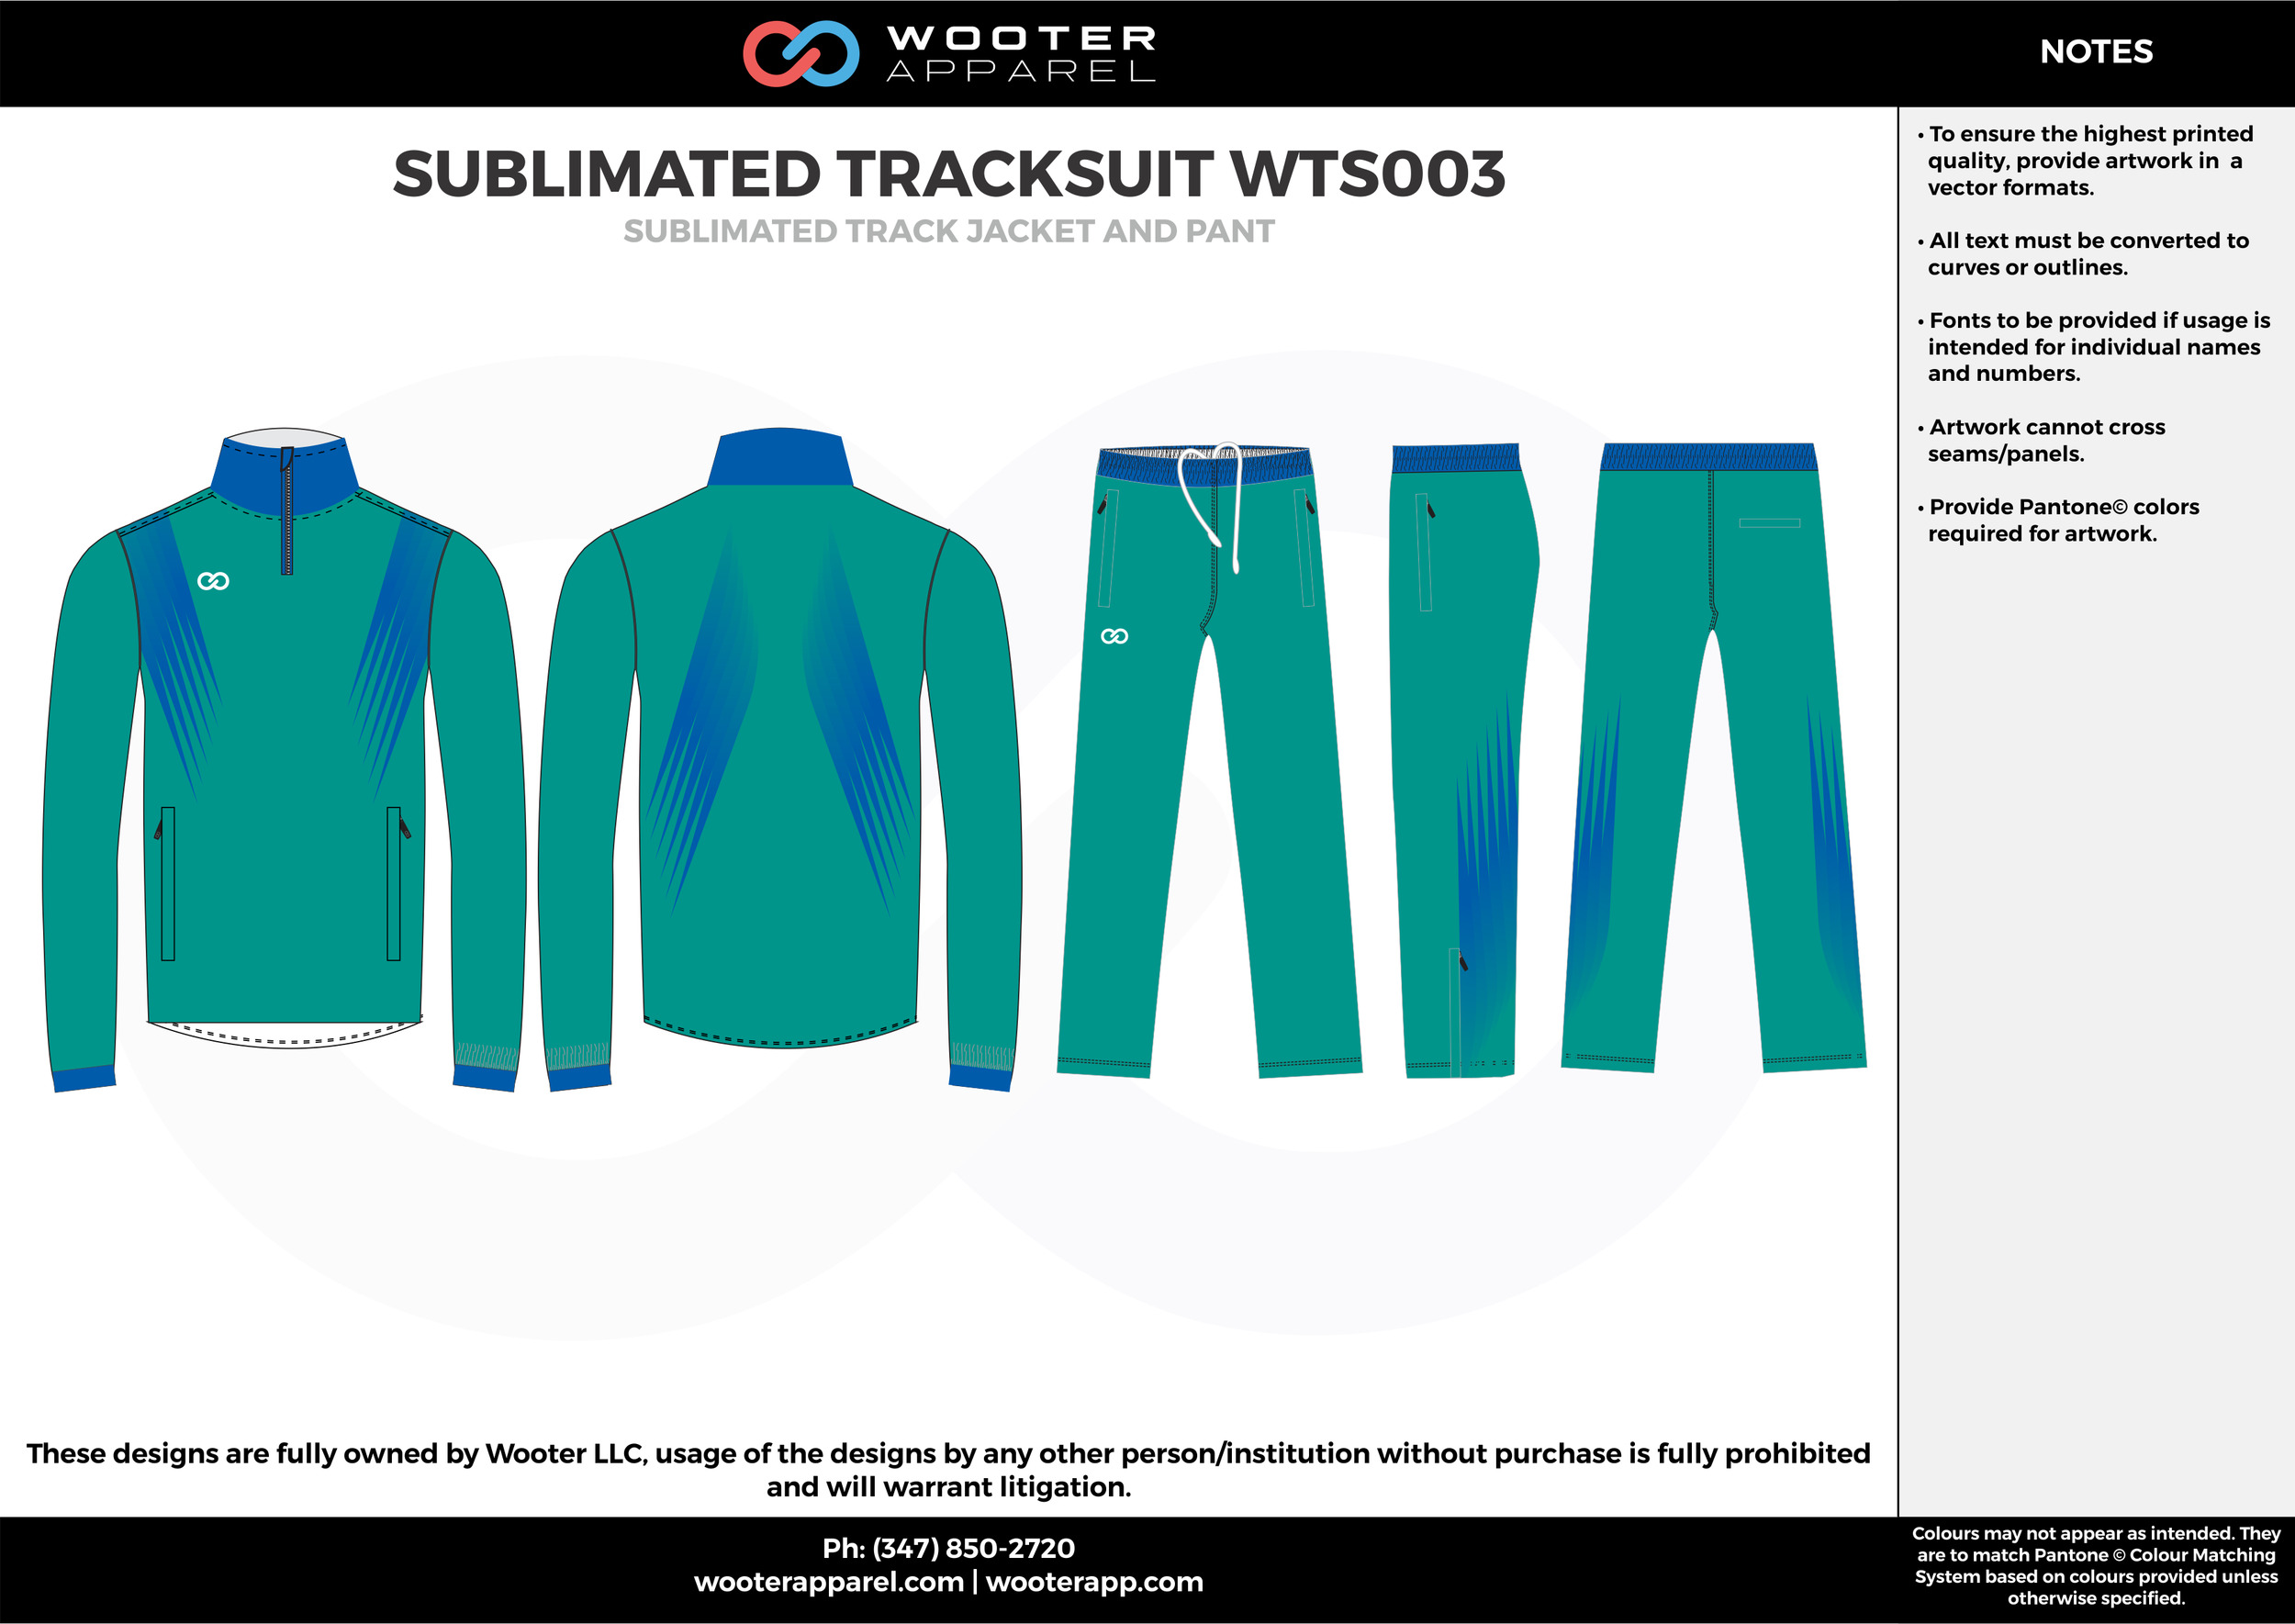 SUBLIMATED TRACKSUIT WTS003 water blue royal blue  Track Jacket, Track Pants, Tracksuit, Warmup Suit